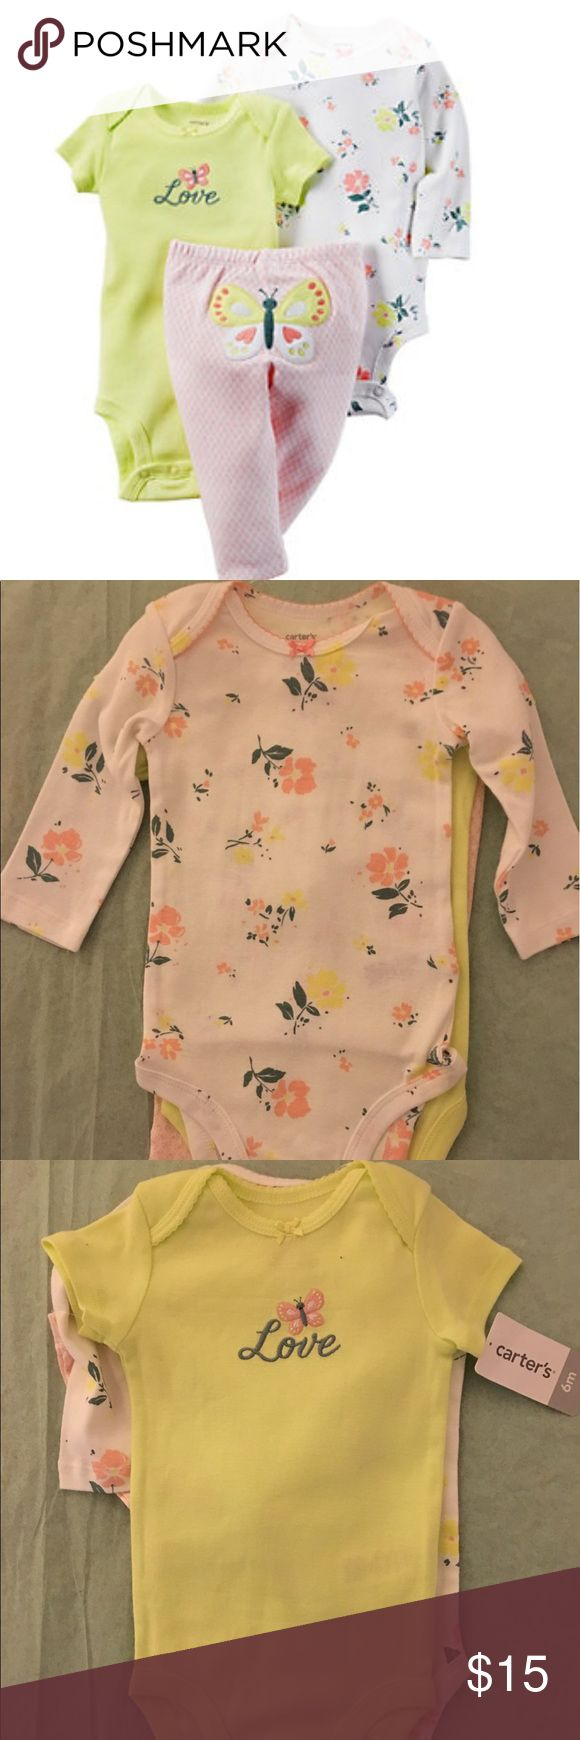 "Baby Girl Carter's Floral Bodysuit & Butterfly Set Brand New With Tags  Give your little sweetie an adorable everyday look with this girls' Carter's bodysuit and pants set. In pink/yellow.  PRODUCT FEATURES 3-piece set includes: long-sleeved bodysuit, short-sleeved bodysuit & pants Bodysuits: envelope neck, inseam snaps Pants: elastic waistband Floral pattern Embroidered ""Love"" & butterfly appliques Picot trim FABRIC & CARE Cotton Machine wash Imported   I11 Carter's Matching Sets"